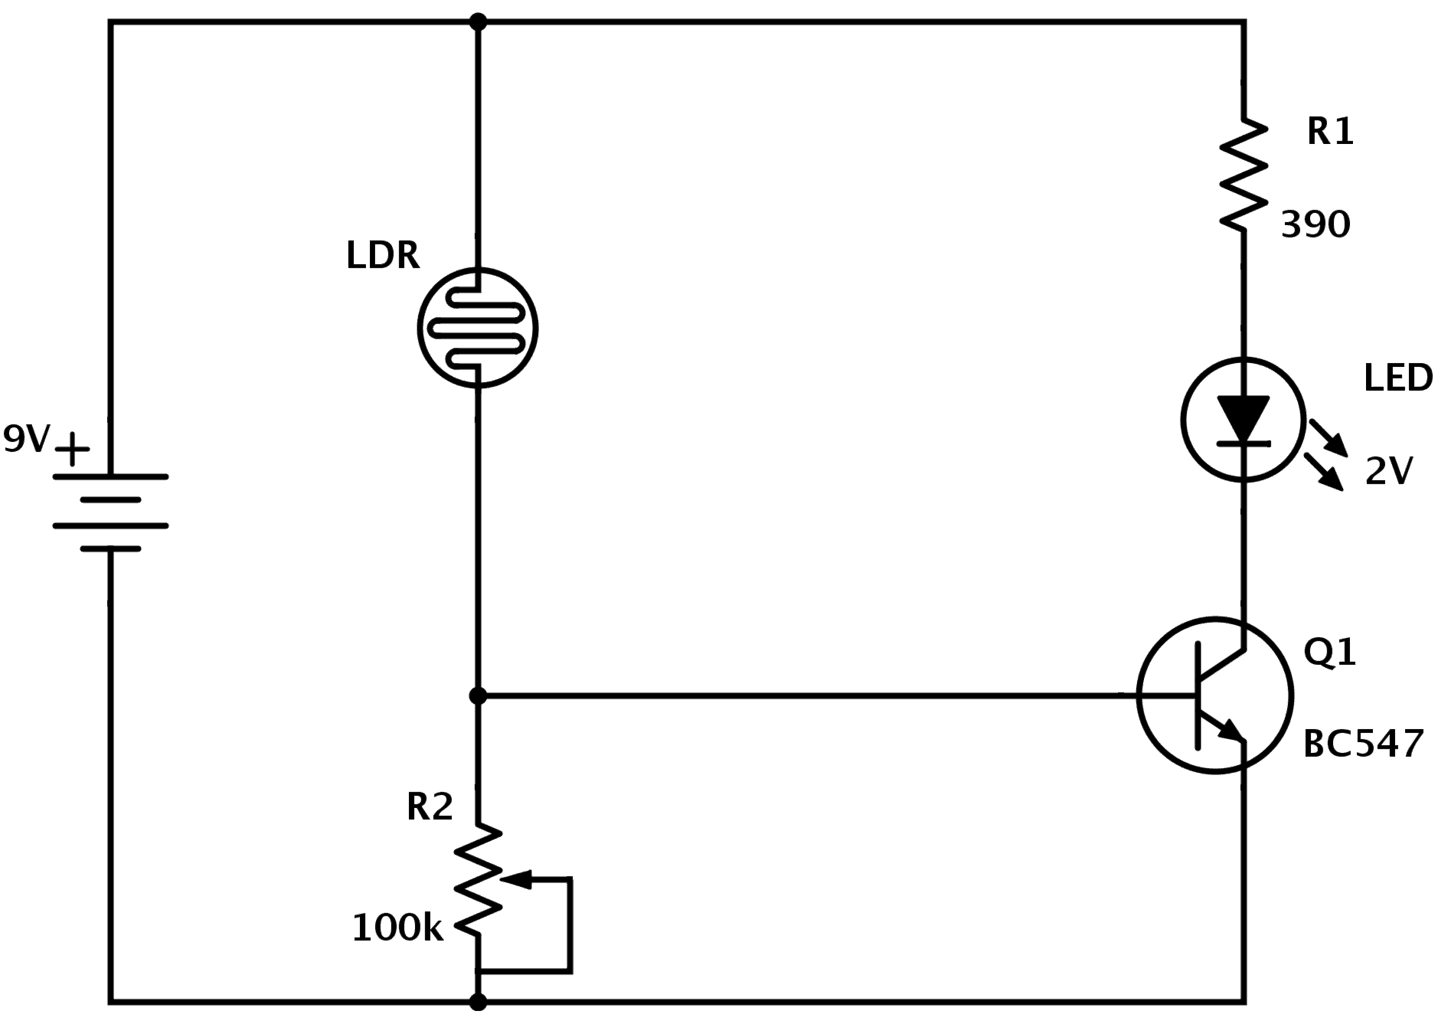 circuit diagram how to read and understand any schematic, wiring diagram